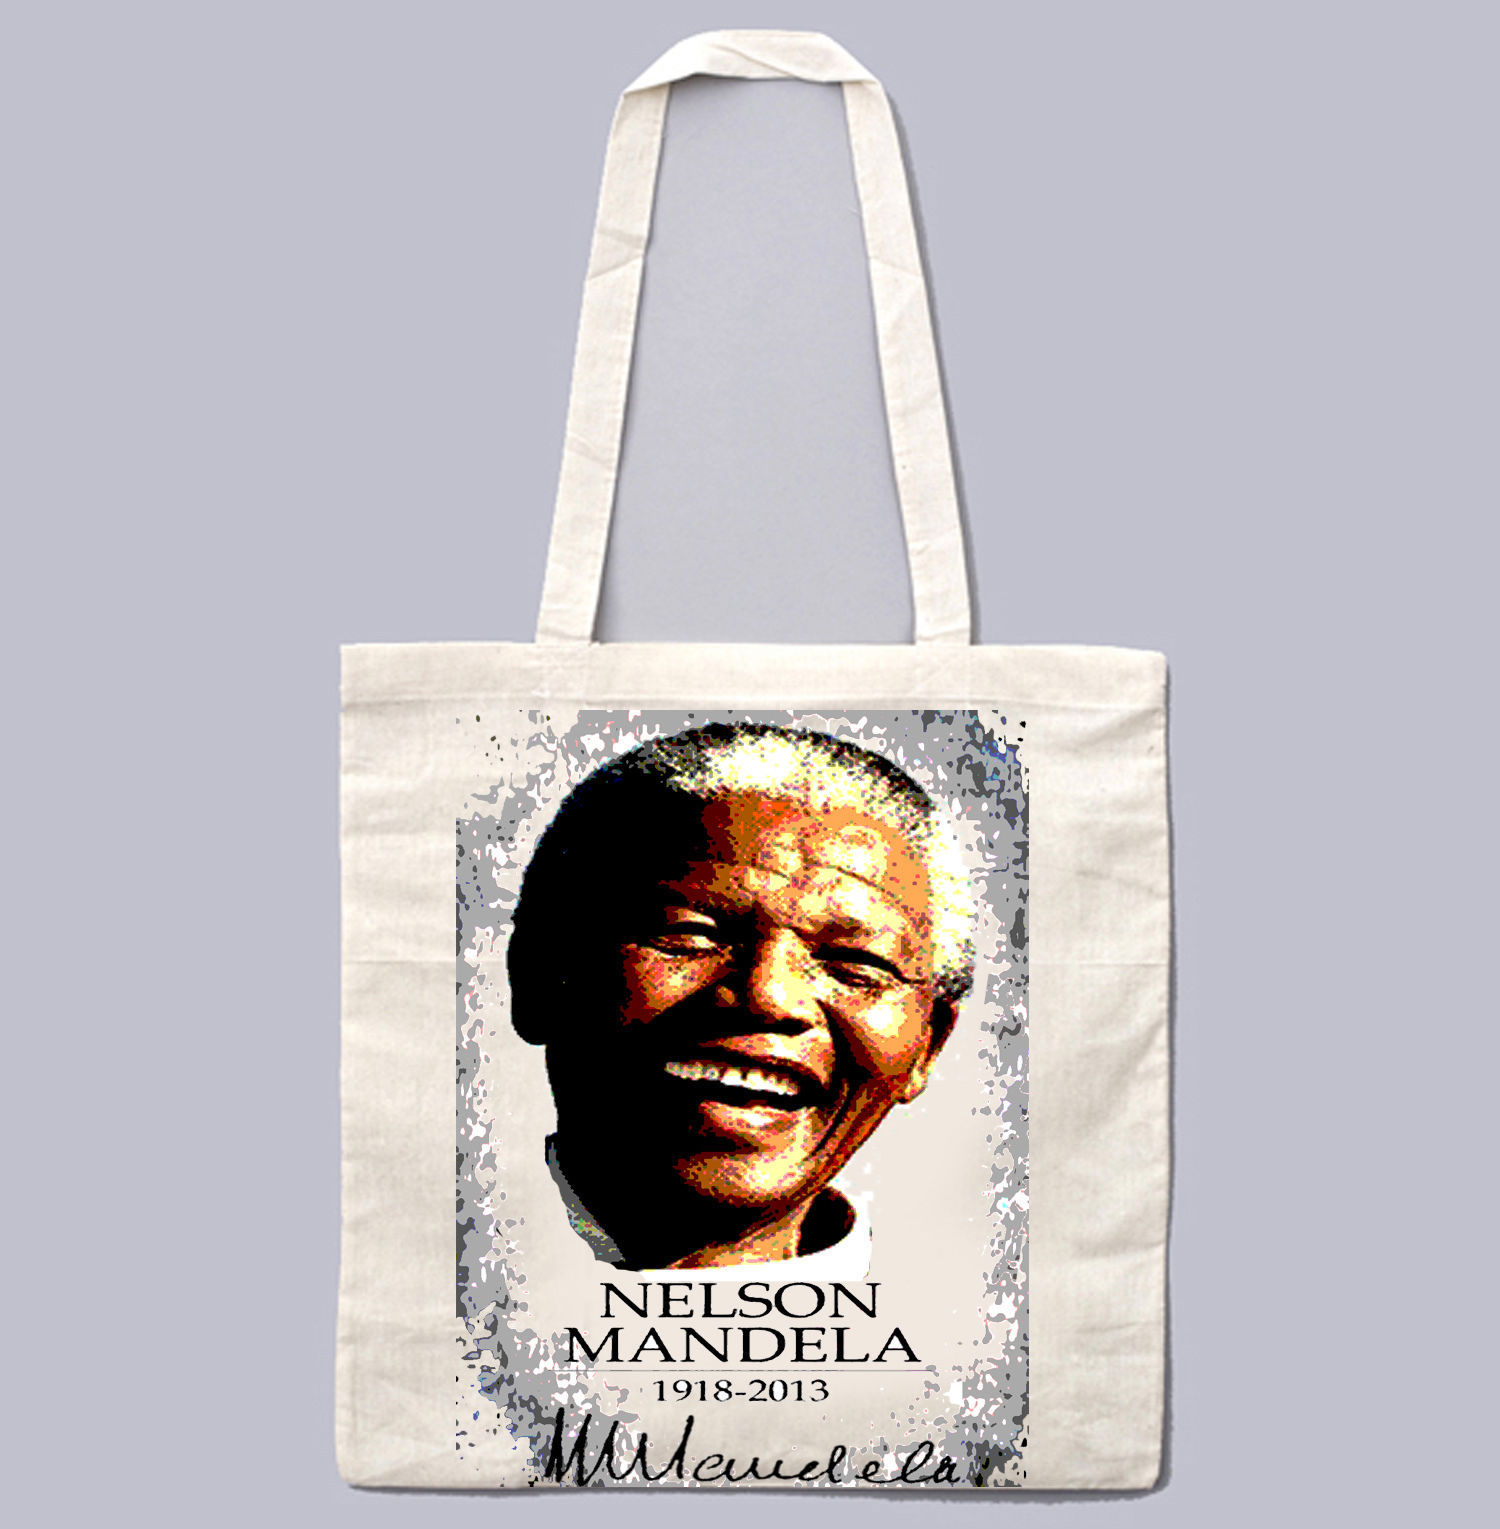 NELSON MANDELA 1918-2013 - NEW AMAZING GRAPHIC WHITE HAND BAG/TOTE BAG